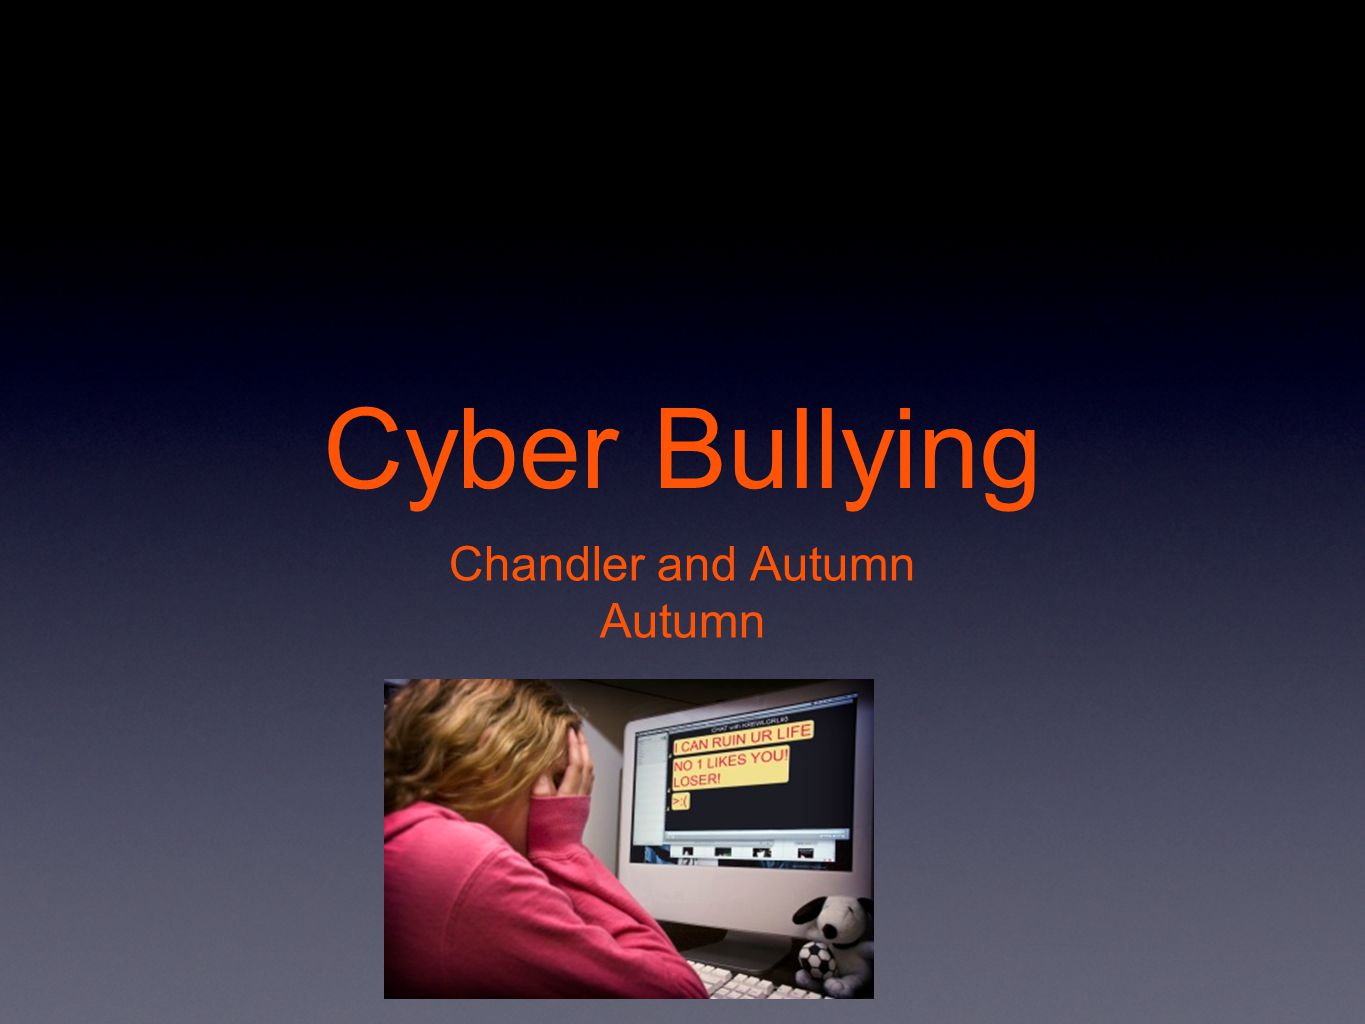 Cyber Bullying Chandler and Autumn Autumn